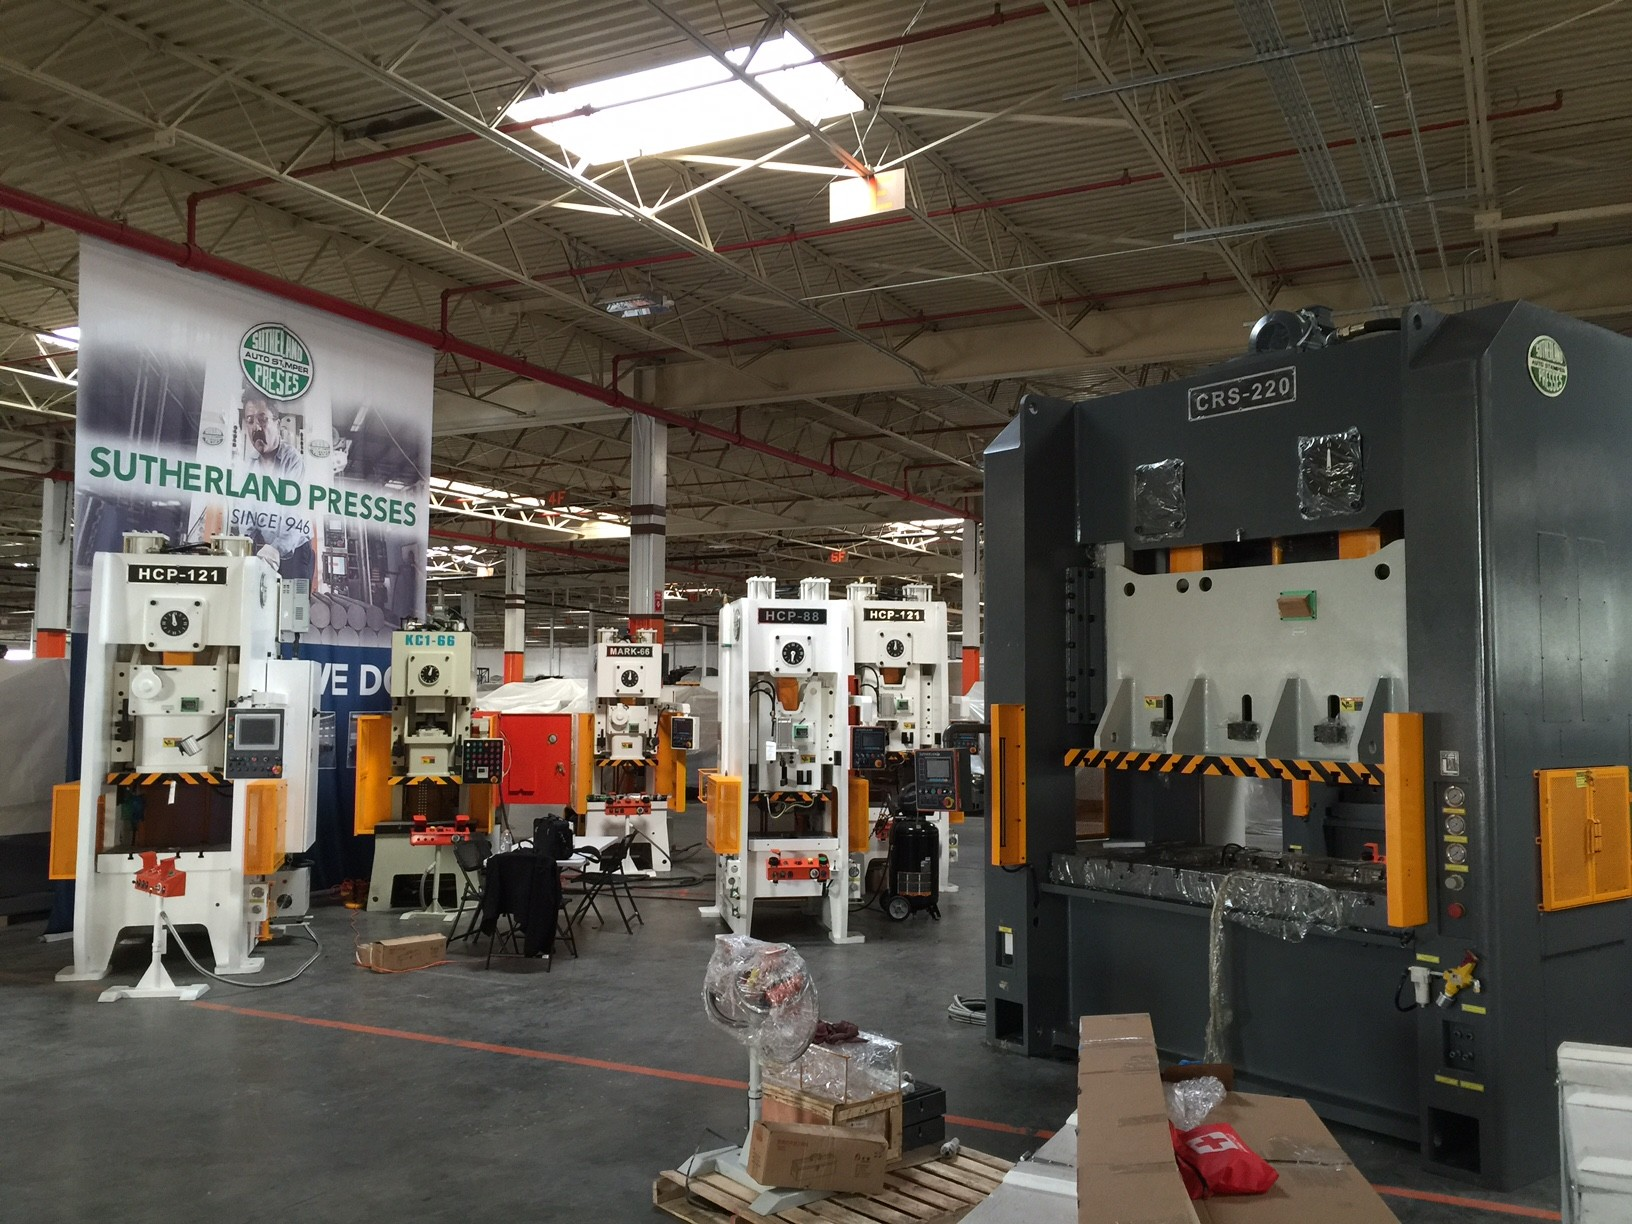 Sutherland California Stamping Presses at Preparation Center